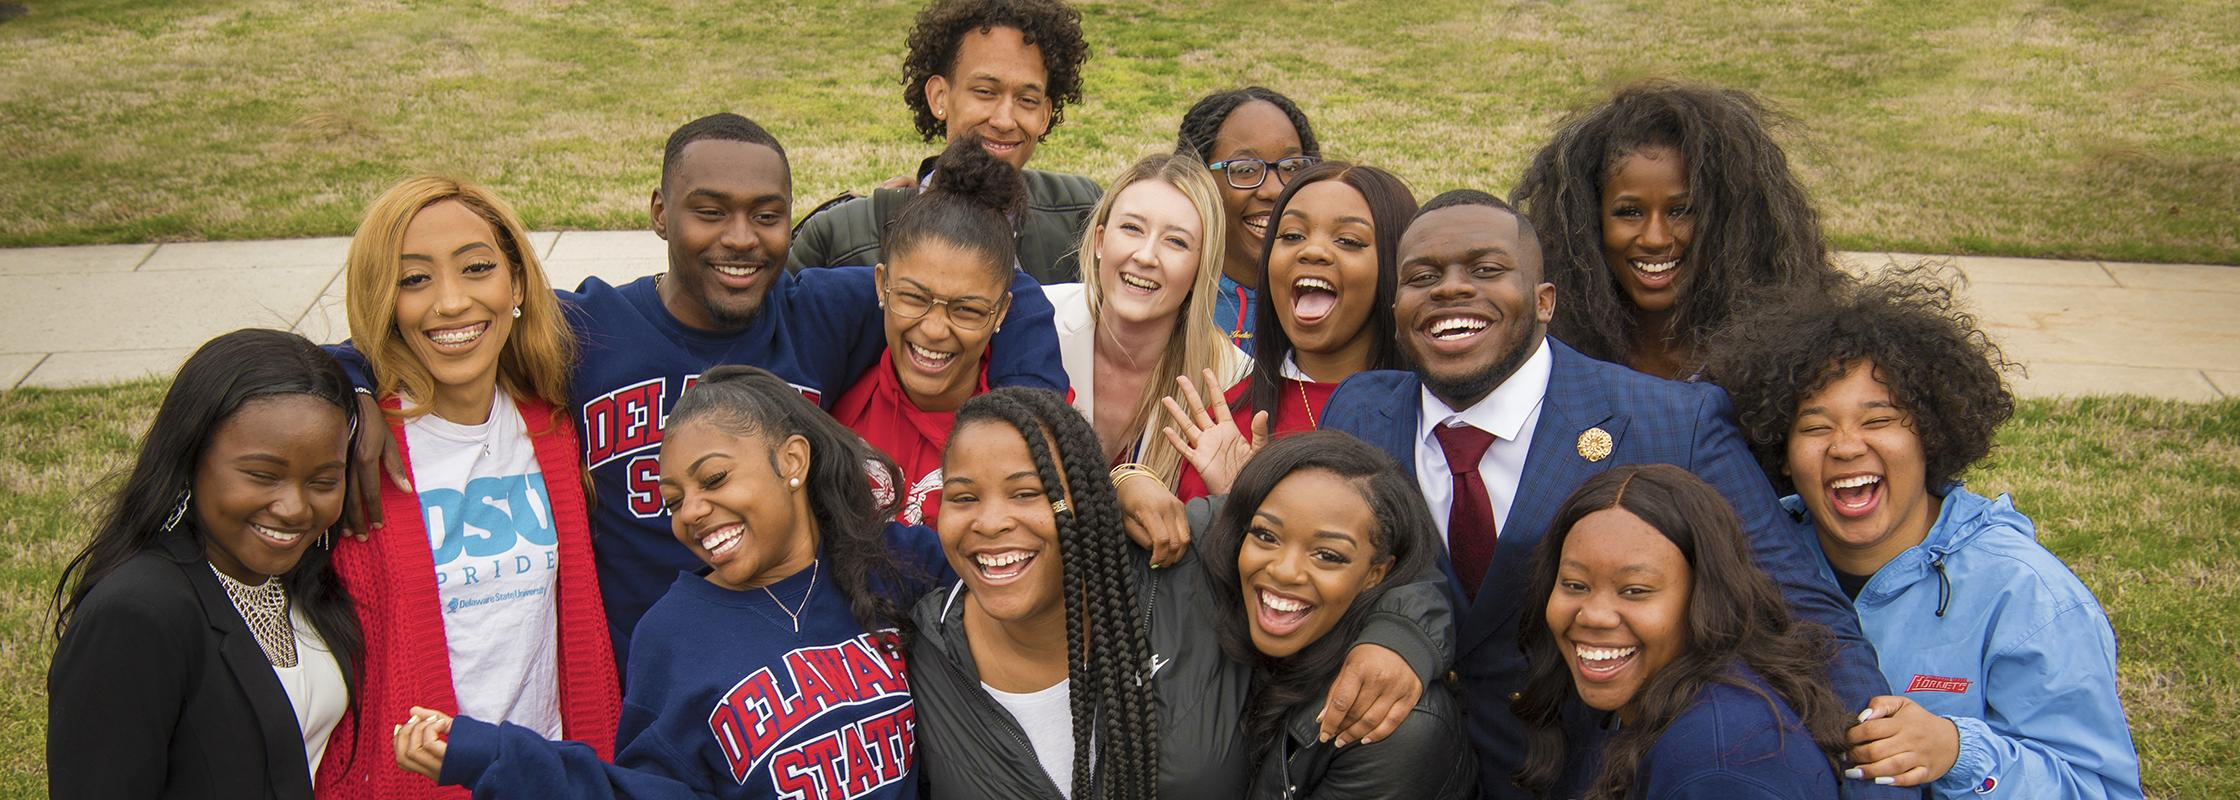 Delaware State University Welcome Days 2019